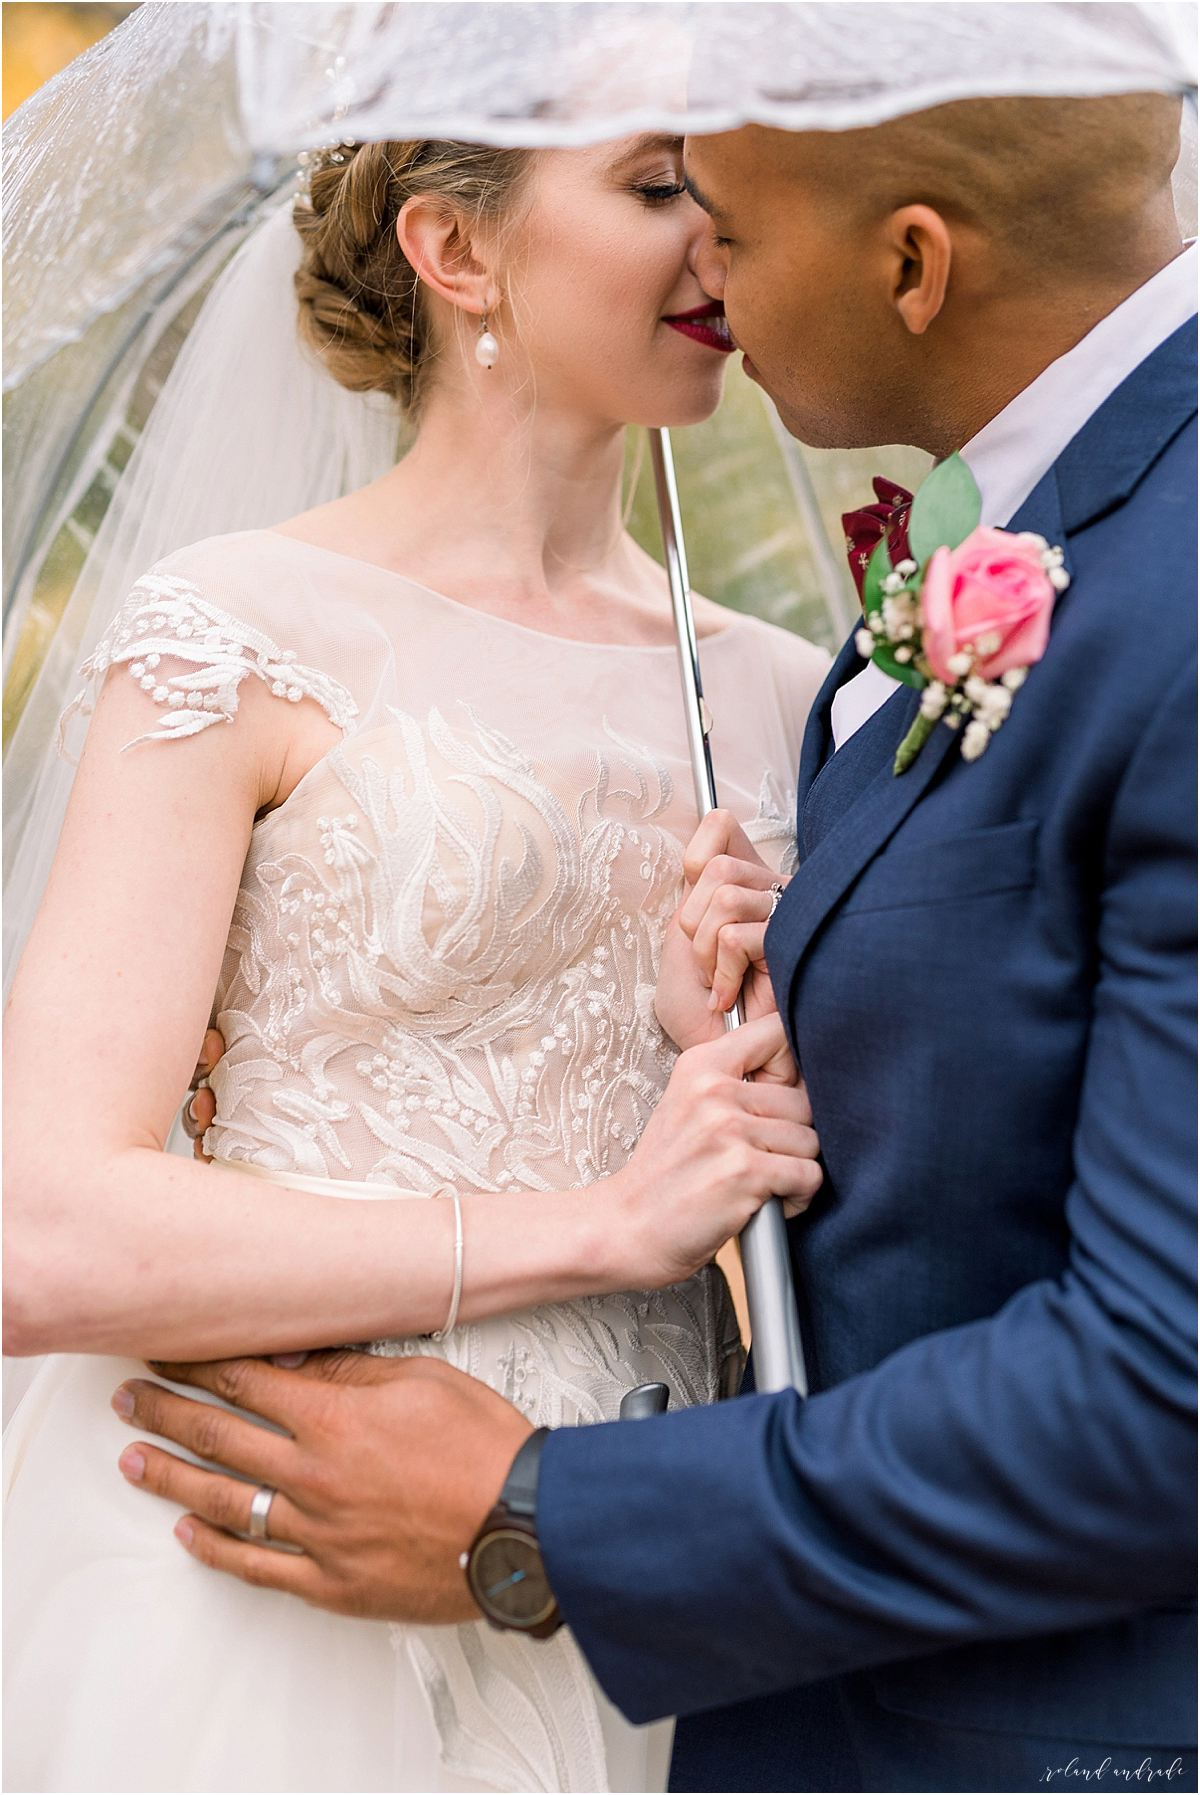 Naperville Country Club Wedding, Chicago Wedding Photographer, Naperville Wedding Photographer, Best Photographer In Aurora, Best Photographer In Chicago_0054.jpg